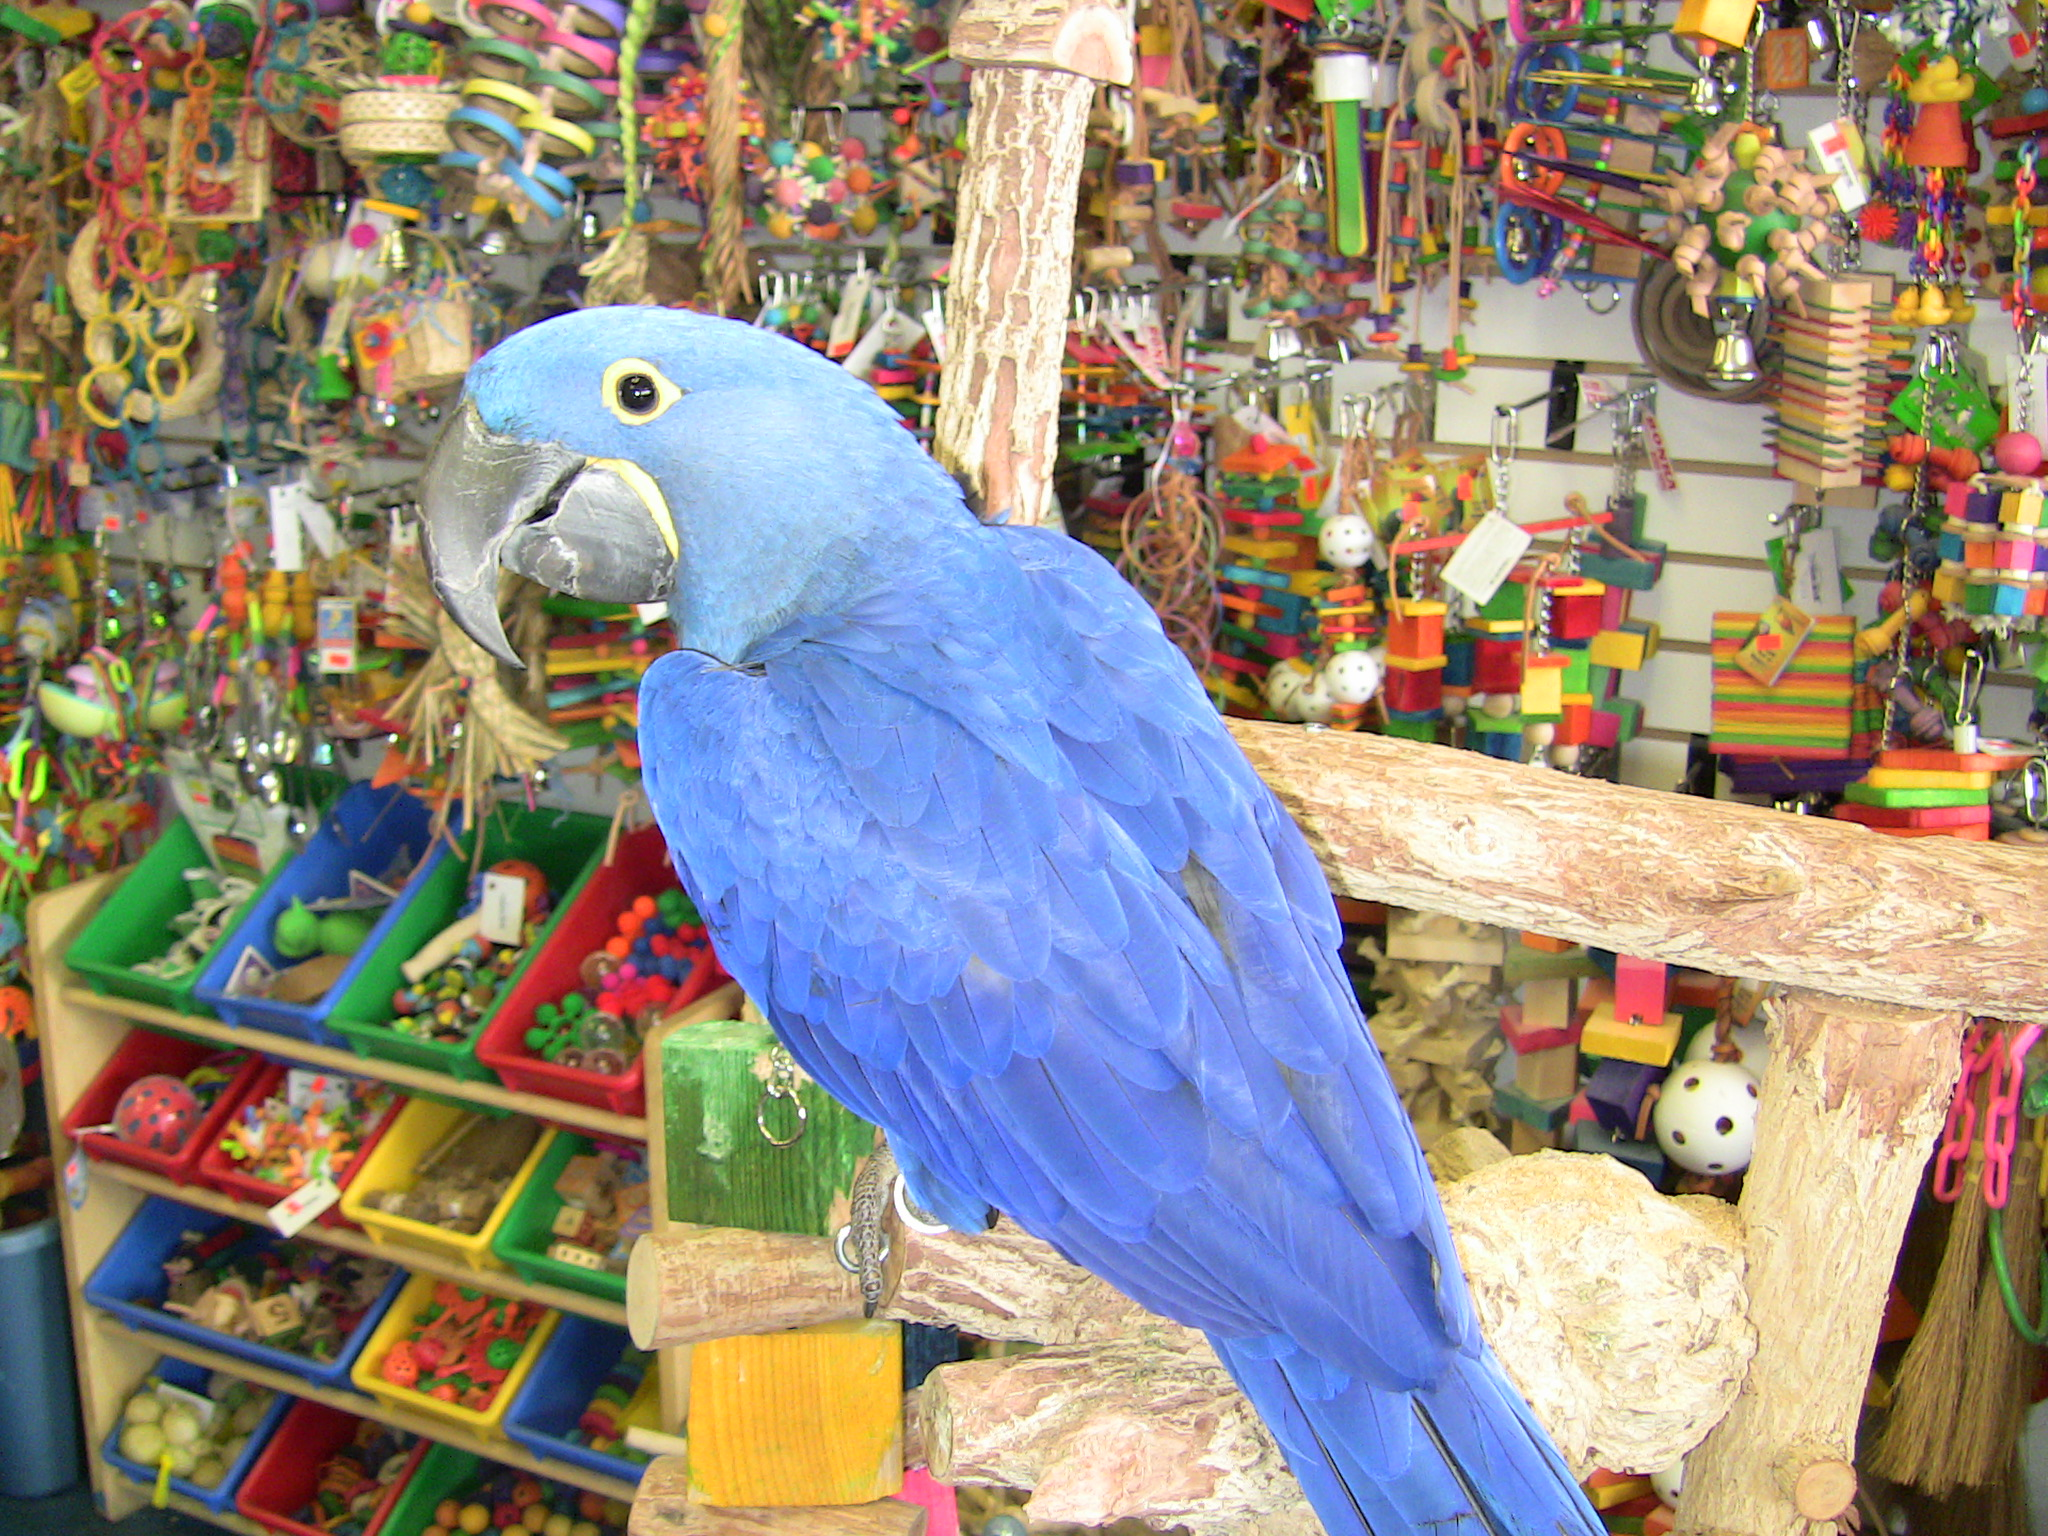 Preparing Yourself For Getting a Bird – Parrot Nation